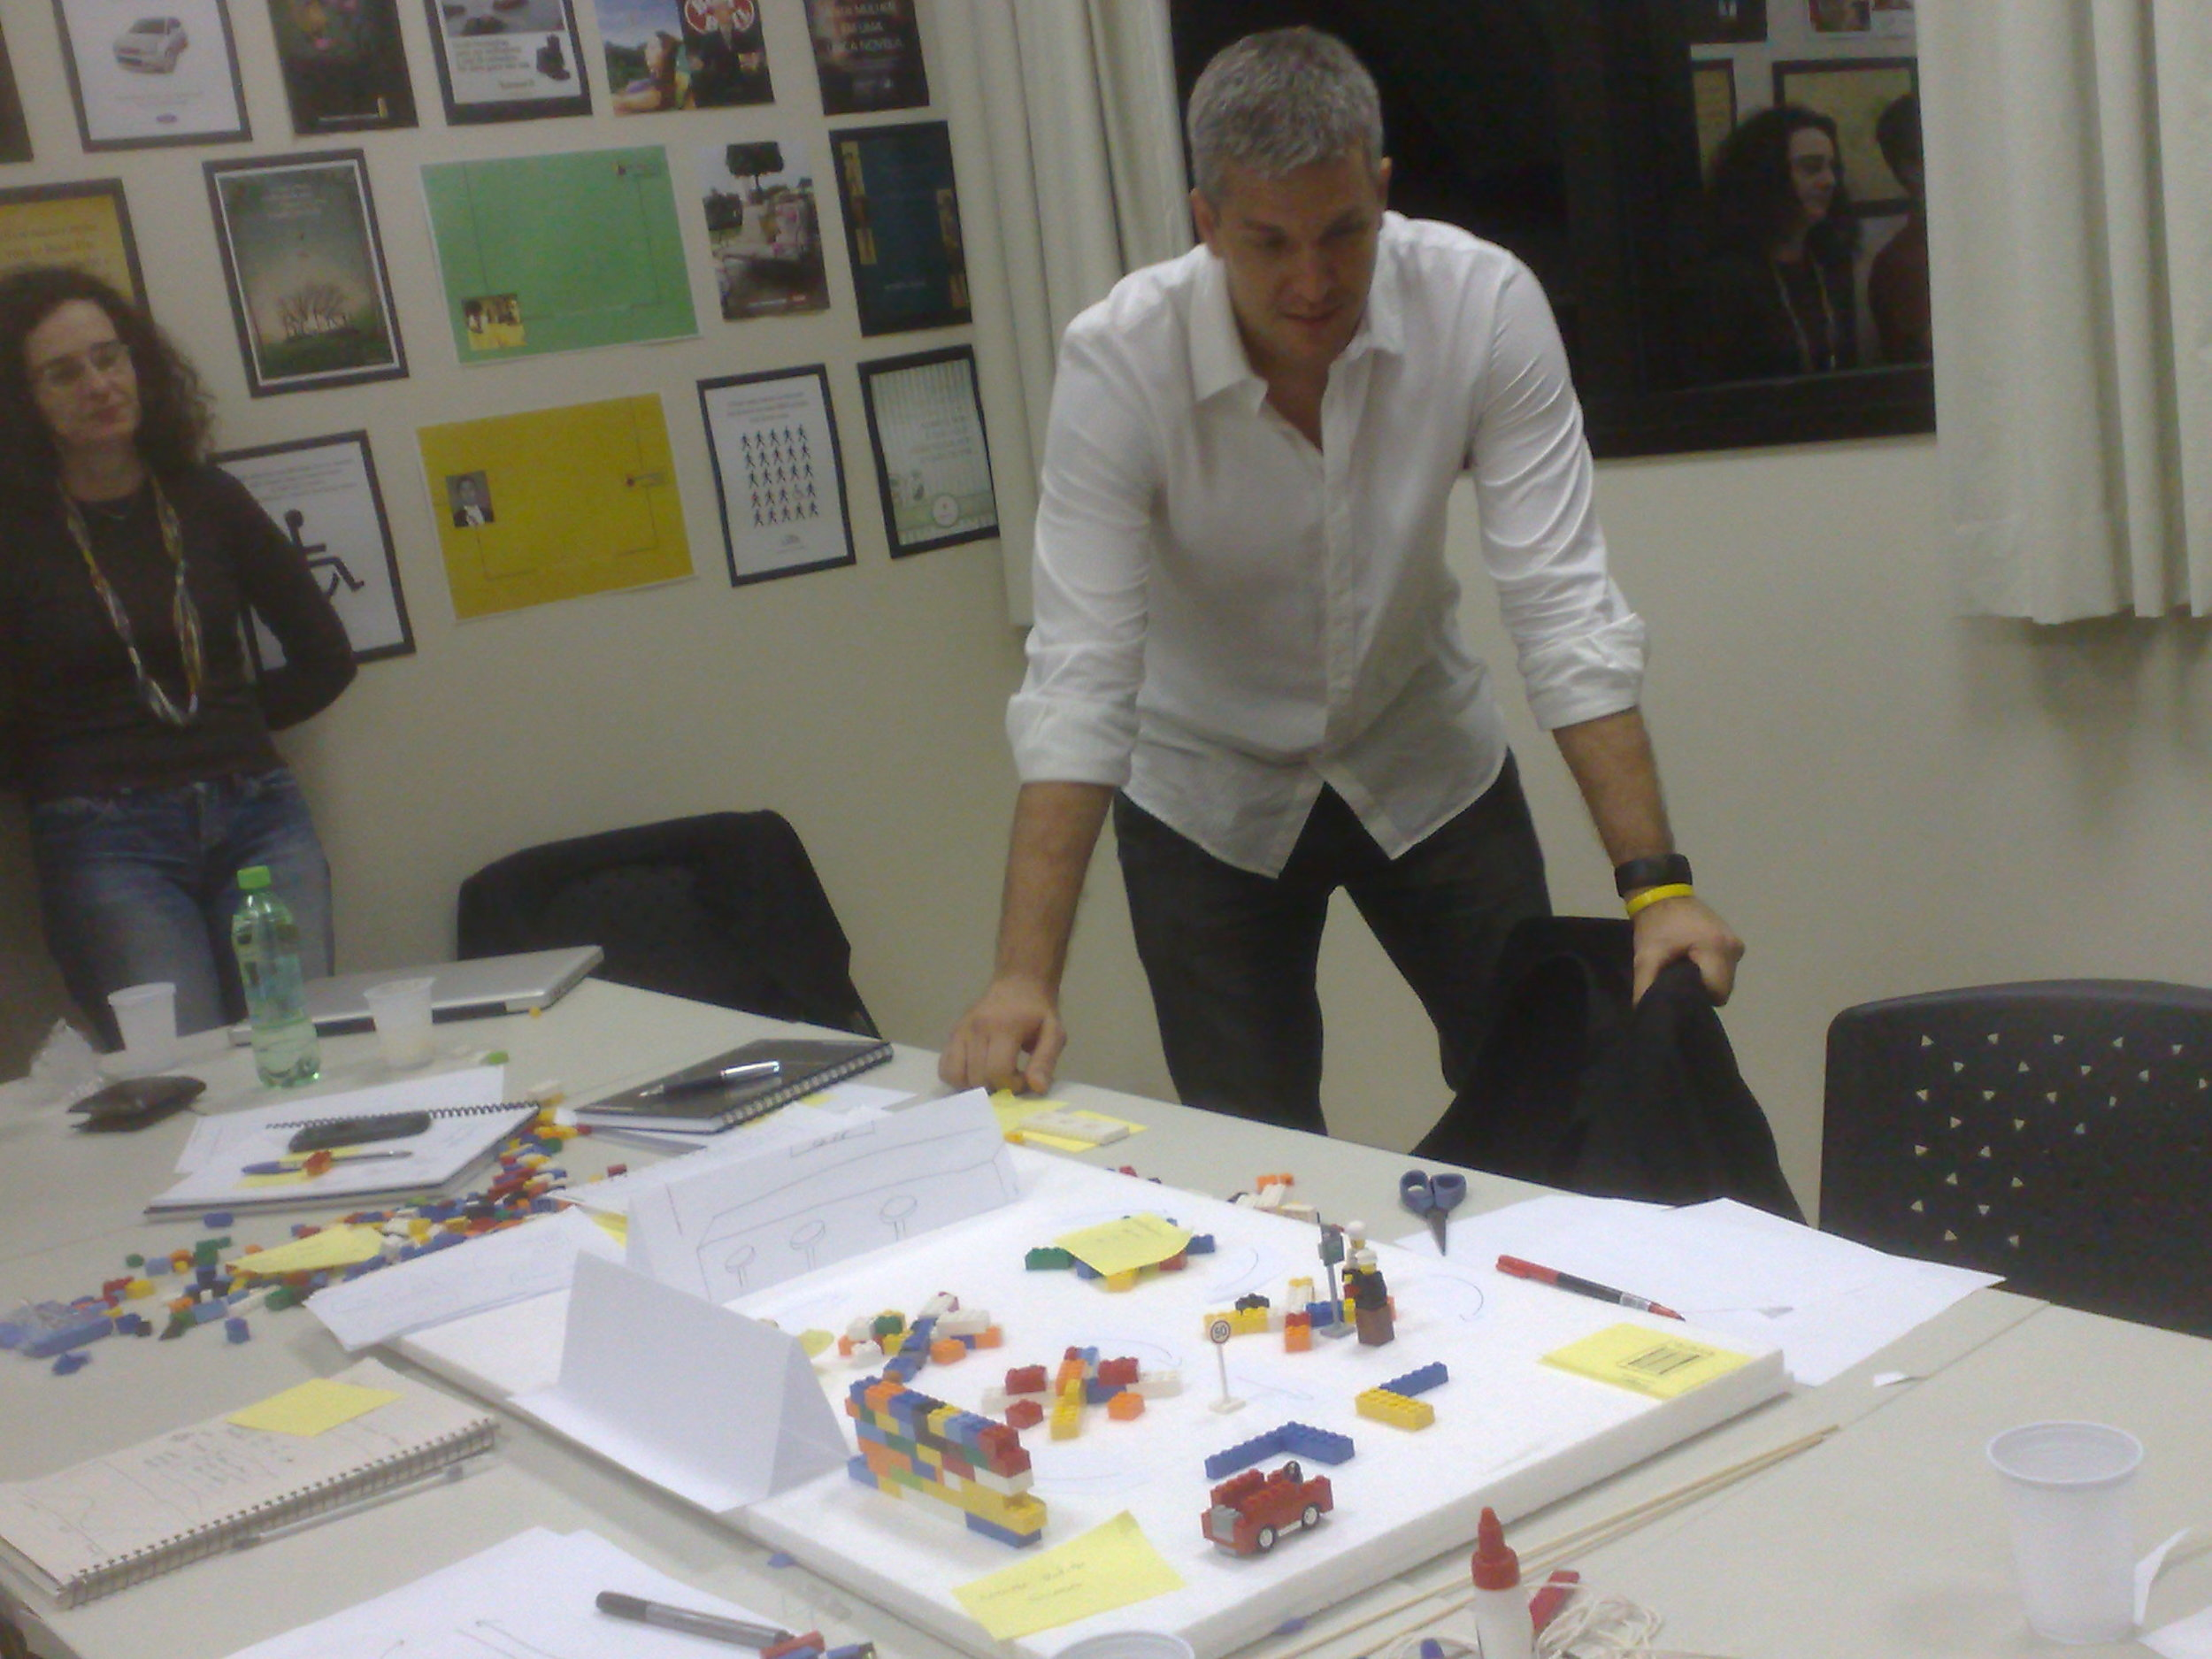 Day 6 - #DesignThinking and #Innovation - #Prototyping @dtespm w/@LuisAlt @TennyDesign